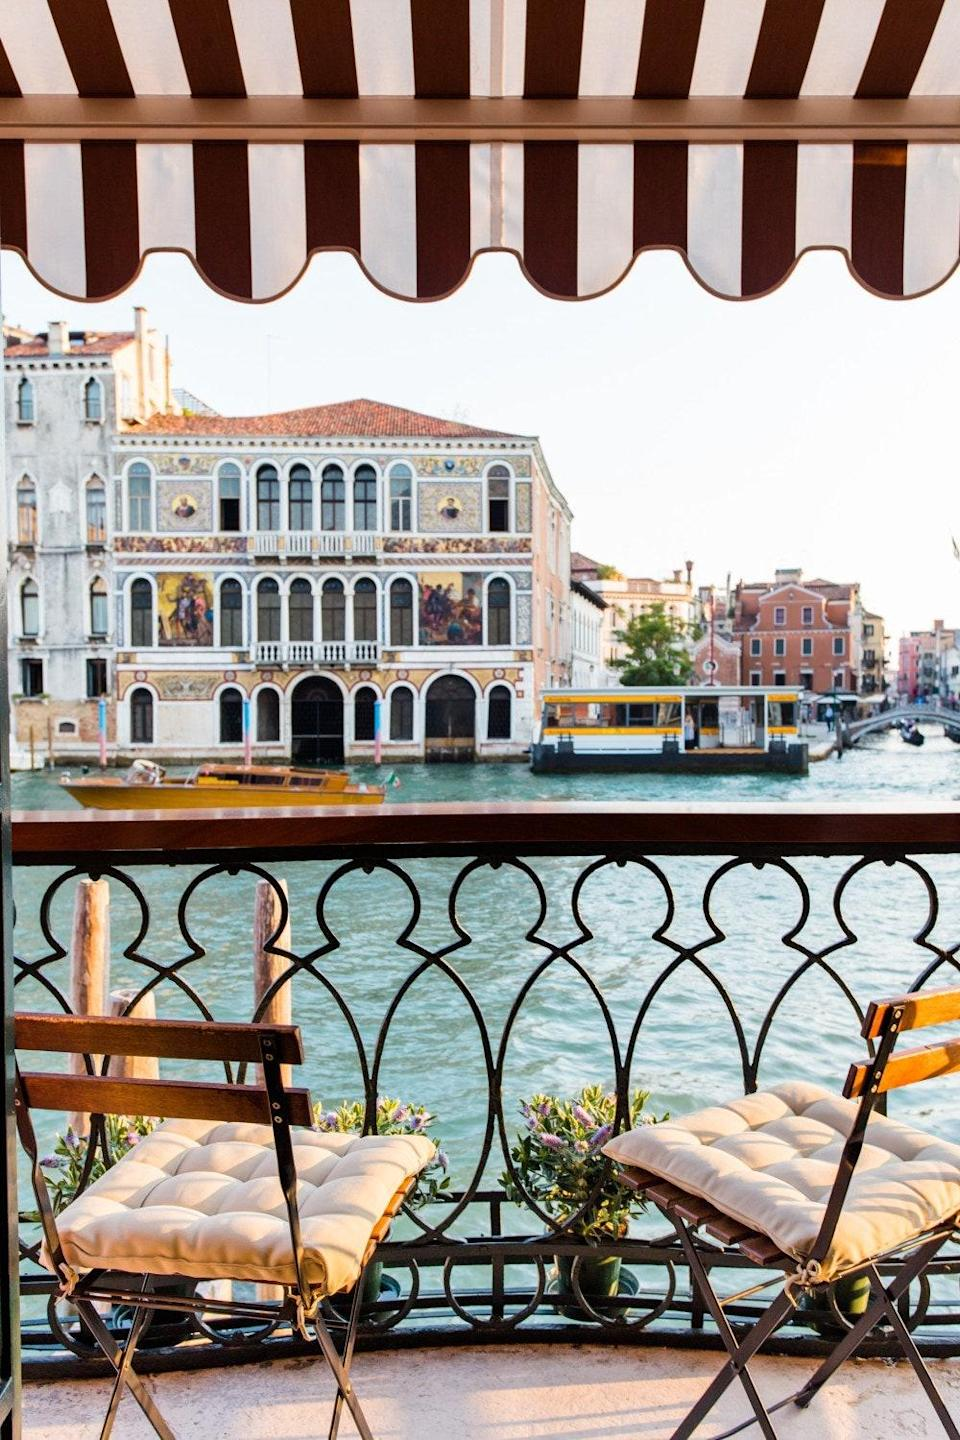 """If you want to get up close and personal with Venice's hustle and bustle, pony up for this apartment directly on the Grand Canal. You'll want to schedule some time to sit out on the patio and watch boats fly by. The inside lives up to the outside's standards too, with a leafy green Venetian-plastered living room, two bedrooms, and a fully stocked kitchen. This is an <a href=""""https://www.cntraveler.com/story/airbnb-plus-is-for-people-who-hate-airbnb?mbid=synd_yahoo_rss"""" rel=""""nofollow noopener"""" target=""""_blank"""" data-ylk=""""slk:Airbnb Plus"""" class=""""link rapid-noclick-resp"""">Airbnb Plus</a> after all, meaning it's passed a 100-point inspection including having closet and drawer space for guests, a well-lit entry, easy check-in, comfortable mattresses, a coffee maker, and toiletries like shampoo. Bonus: You won't have to worry about finding your way to the apartment on Venice's busy streets with your luggage, as the host Mariacaterina will organize a private water taxi to take you directly from the airport to your Airbnb's front door. $471, Airbnb (Starting Price). <a href=""""https://www.airbnb.com/rooms/plus/7314165"""" rel=""""nofollow noopener"""" target=""""_blank"""" data-ylk=""""slk:Get it now!"""" class=""""link rapid-noclick-resp"""">Get it now!</a>"""